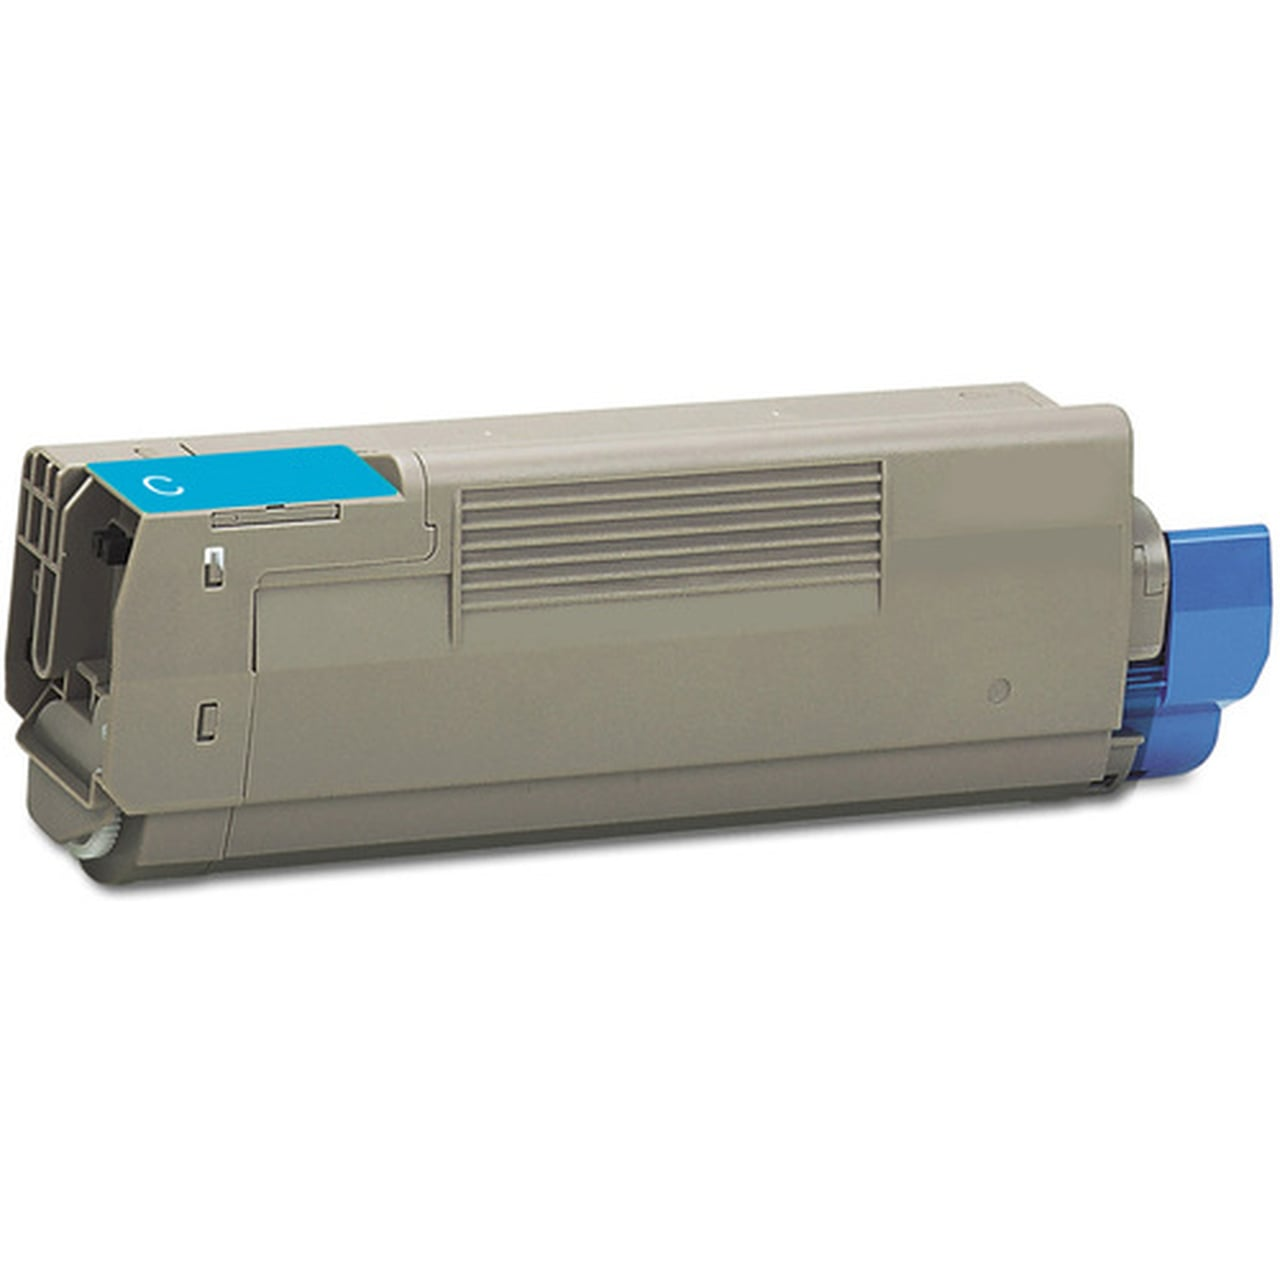 43324468 Toner Cartridge - Okidata Compatible (Cyan)